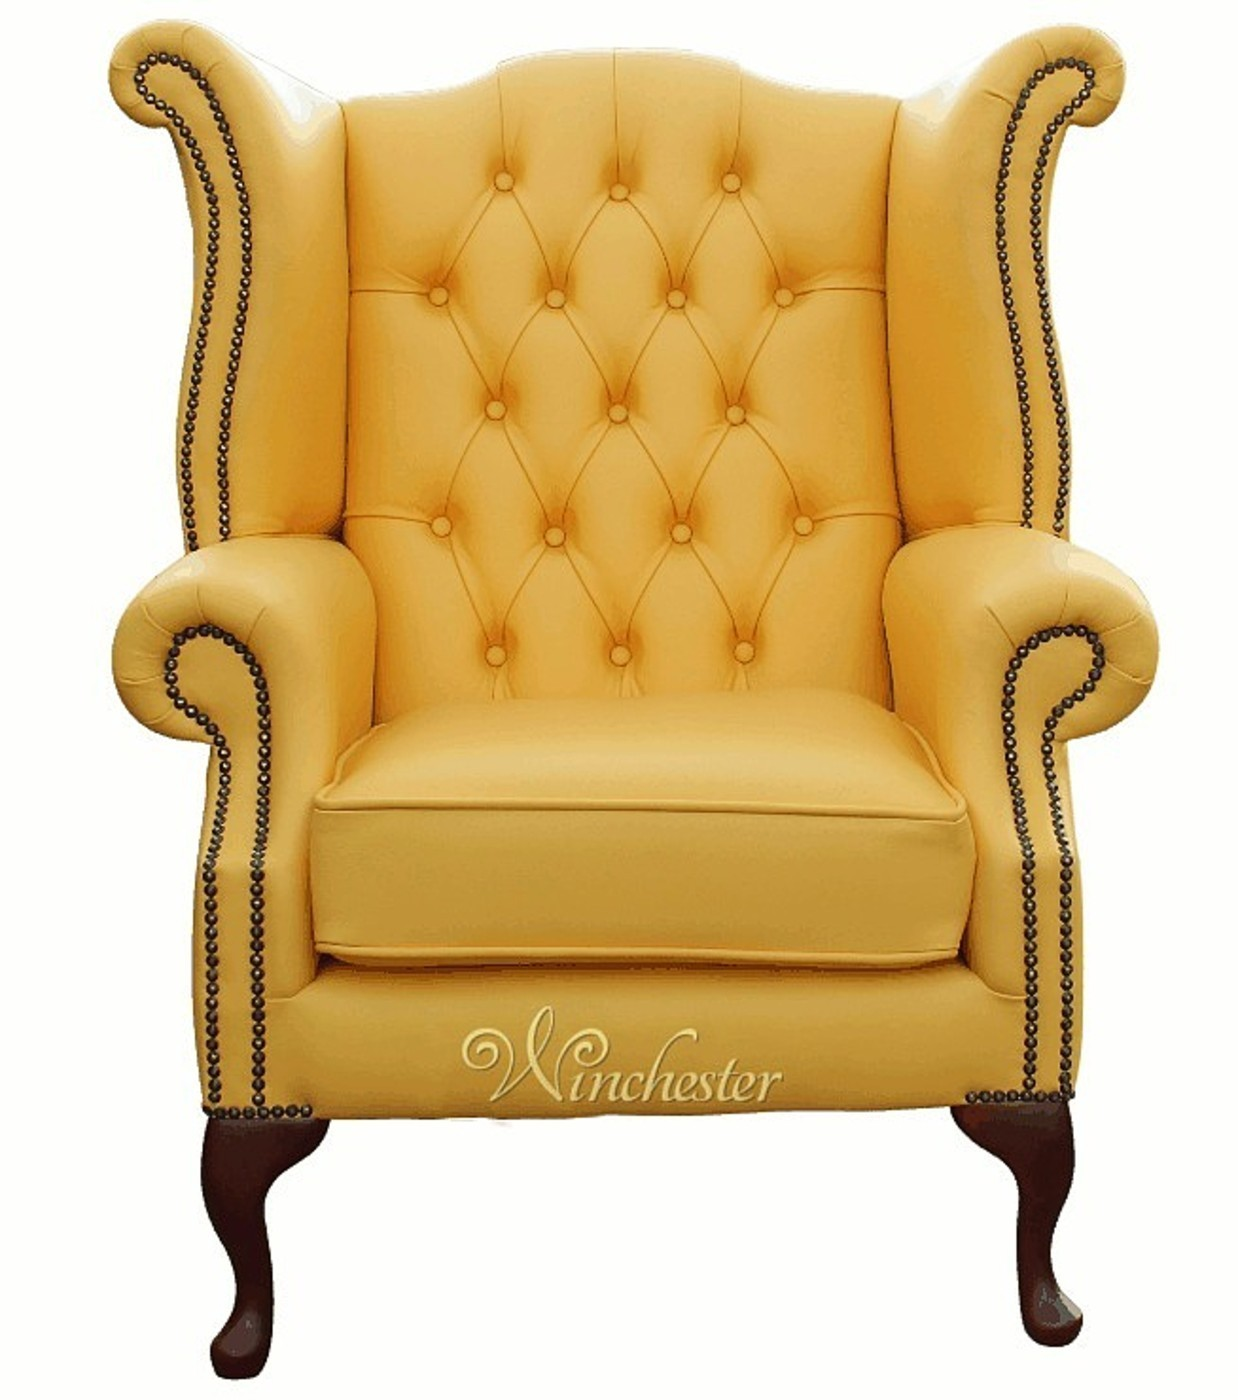 ... Chesterfield Queen Anne Wing Chair Banana Yellow Leather  ...